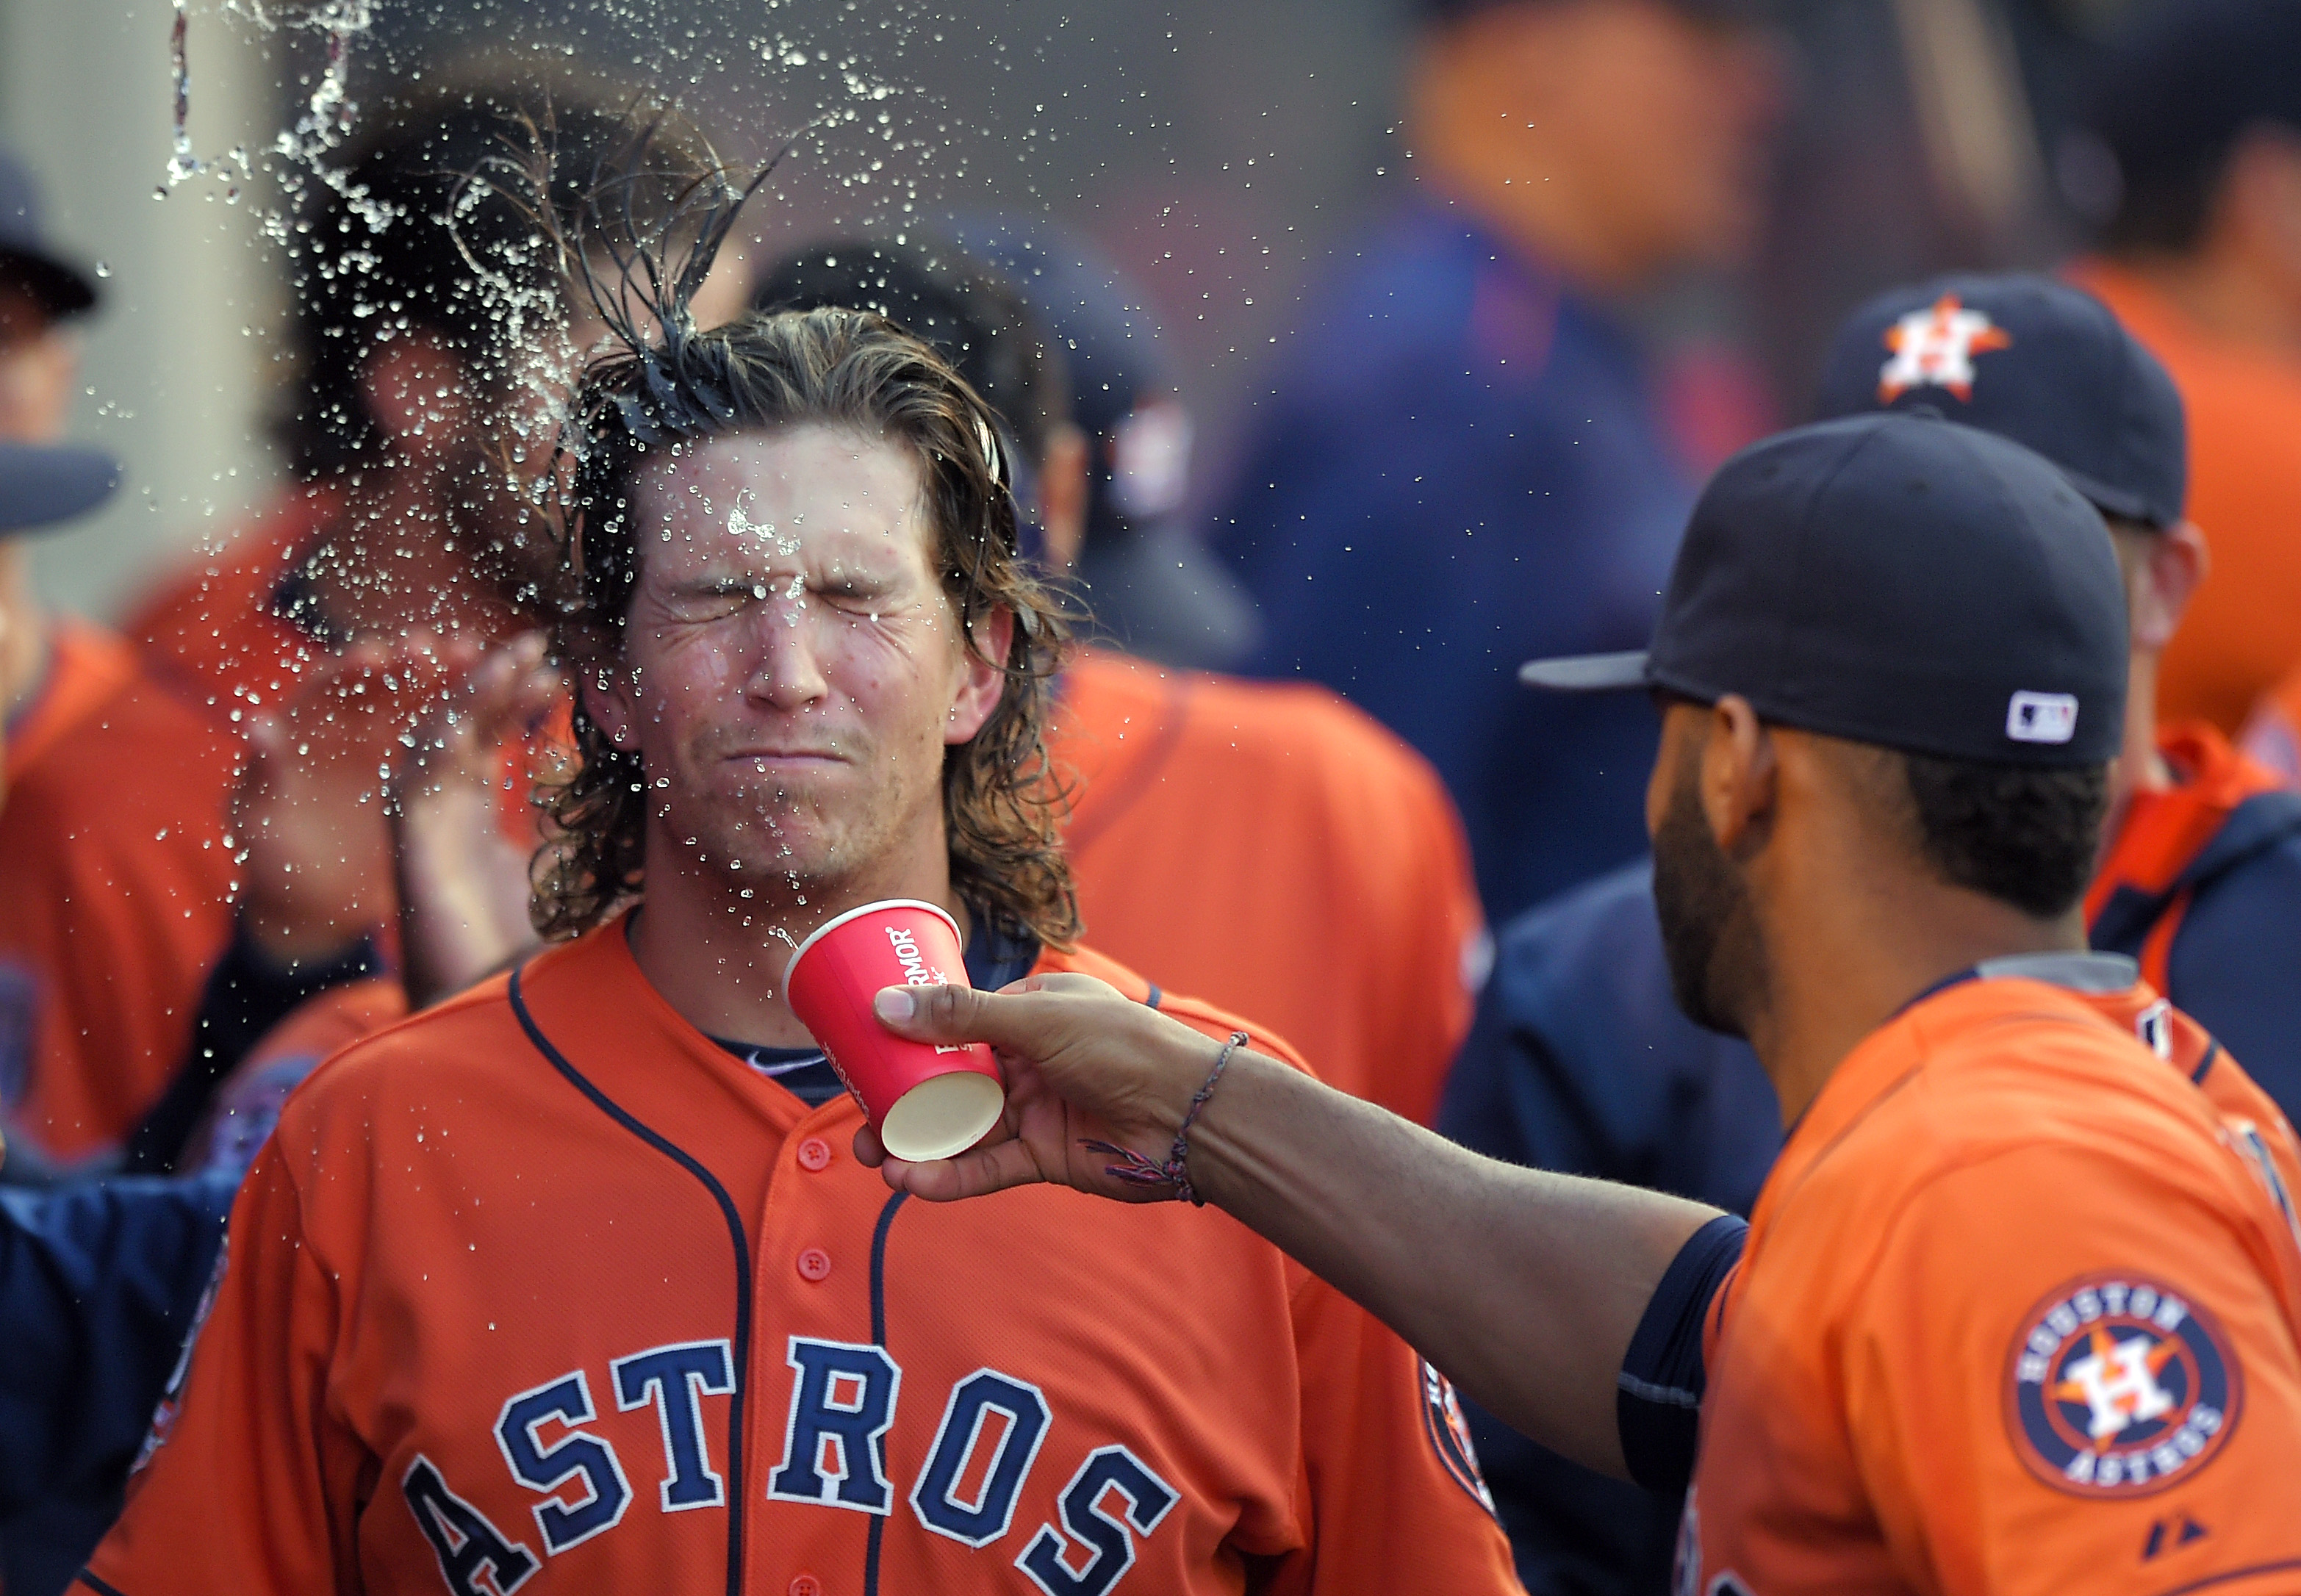 Houston Astros' Colby Rasmus, left, gets a cup a water in the face from Jonathan Villar after hitting a two-run home run during the third inning of a baseball game against the Los Angeles Angels, Saturday, May 9, 2015, in Anaheim, Calif. (AP Photo/Mark J.